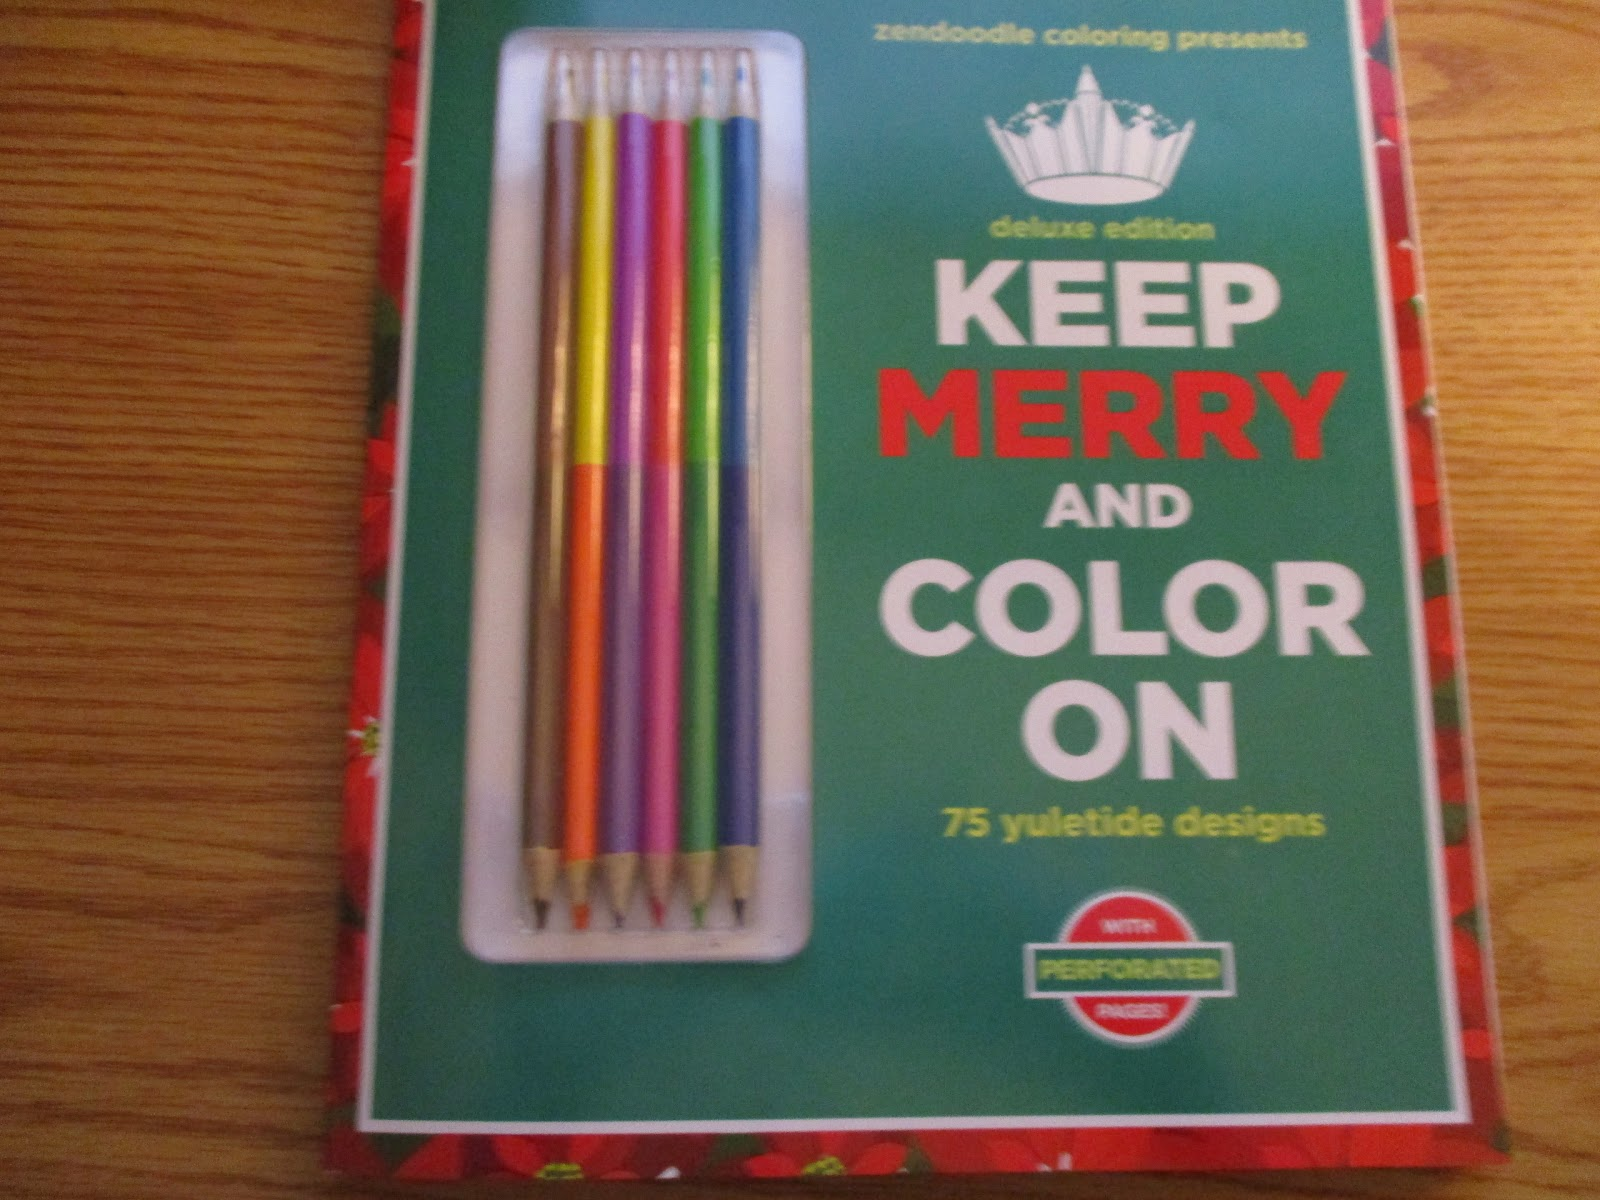 Missys Product Reviews Zendoodle Coloring Presents Keep Merry